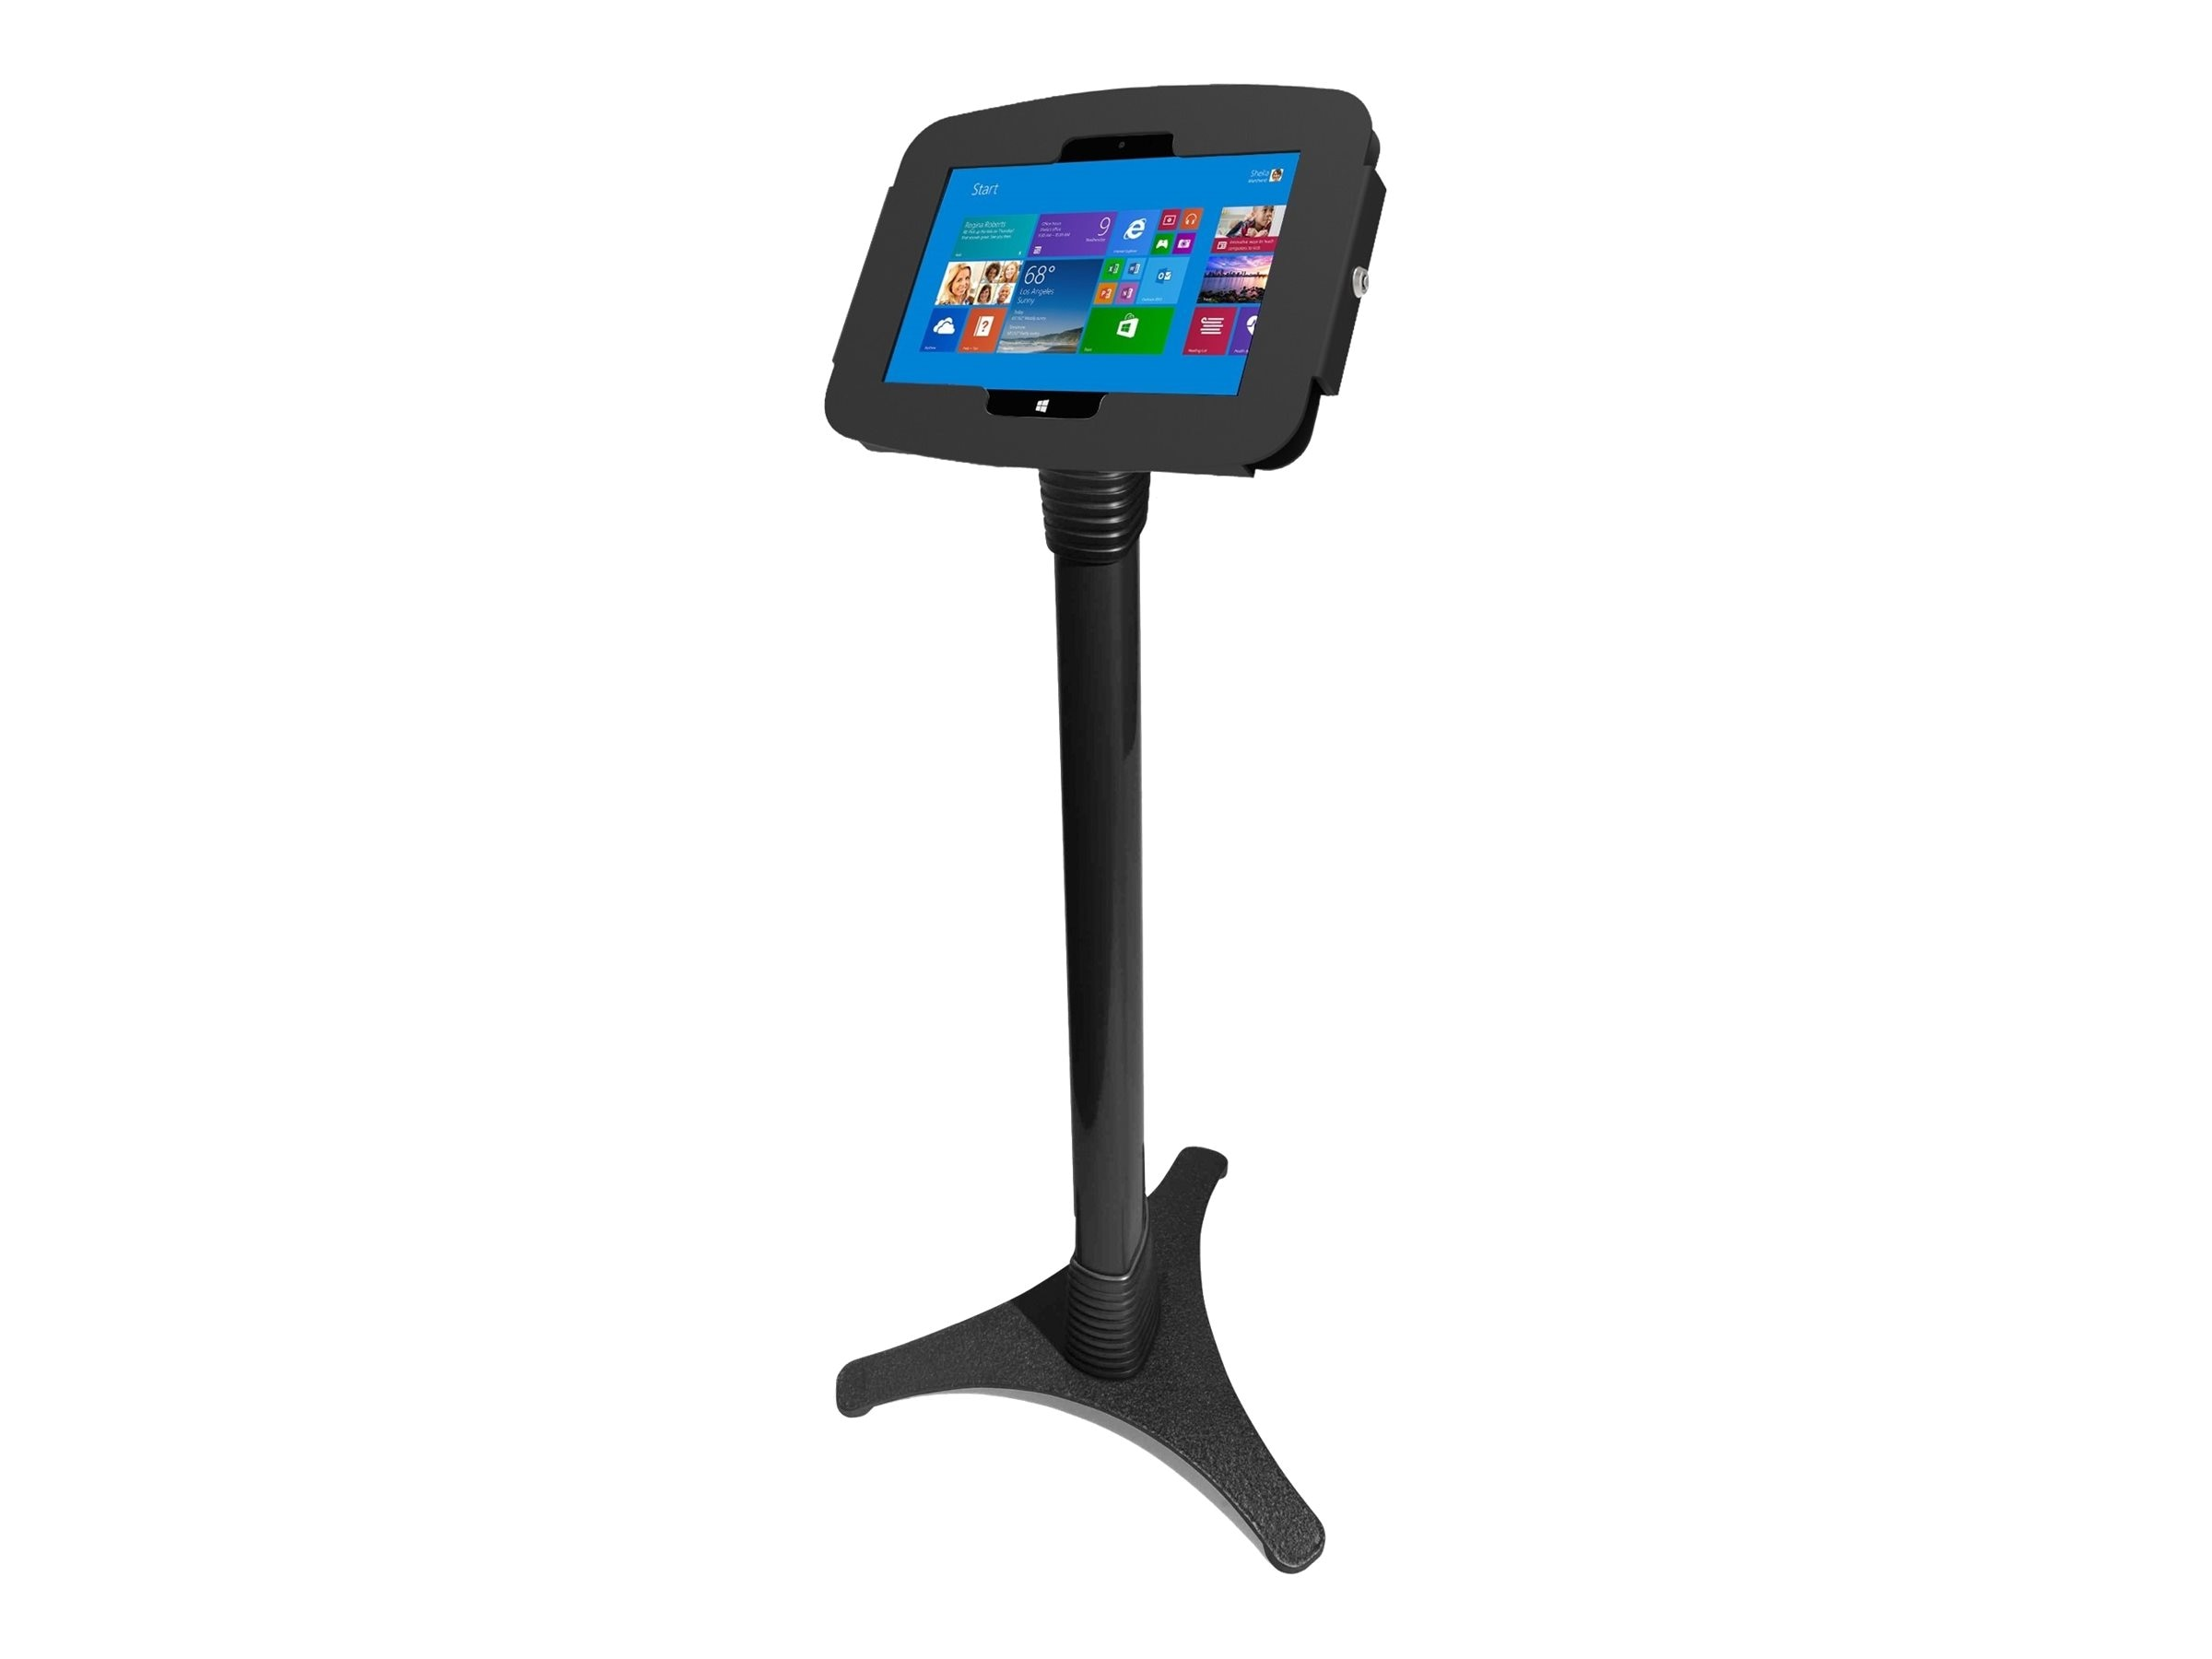 Compulocks Surface Pro 3 Space Adjustable Stand, Black